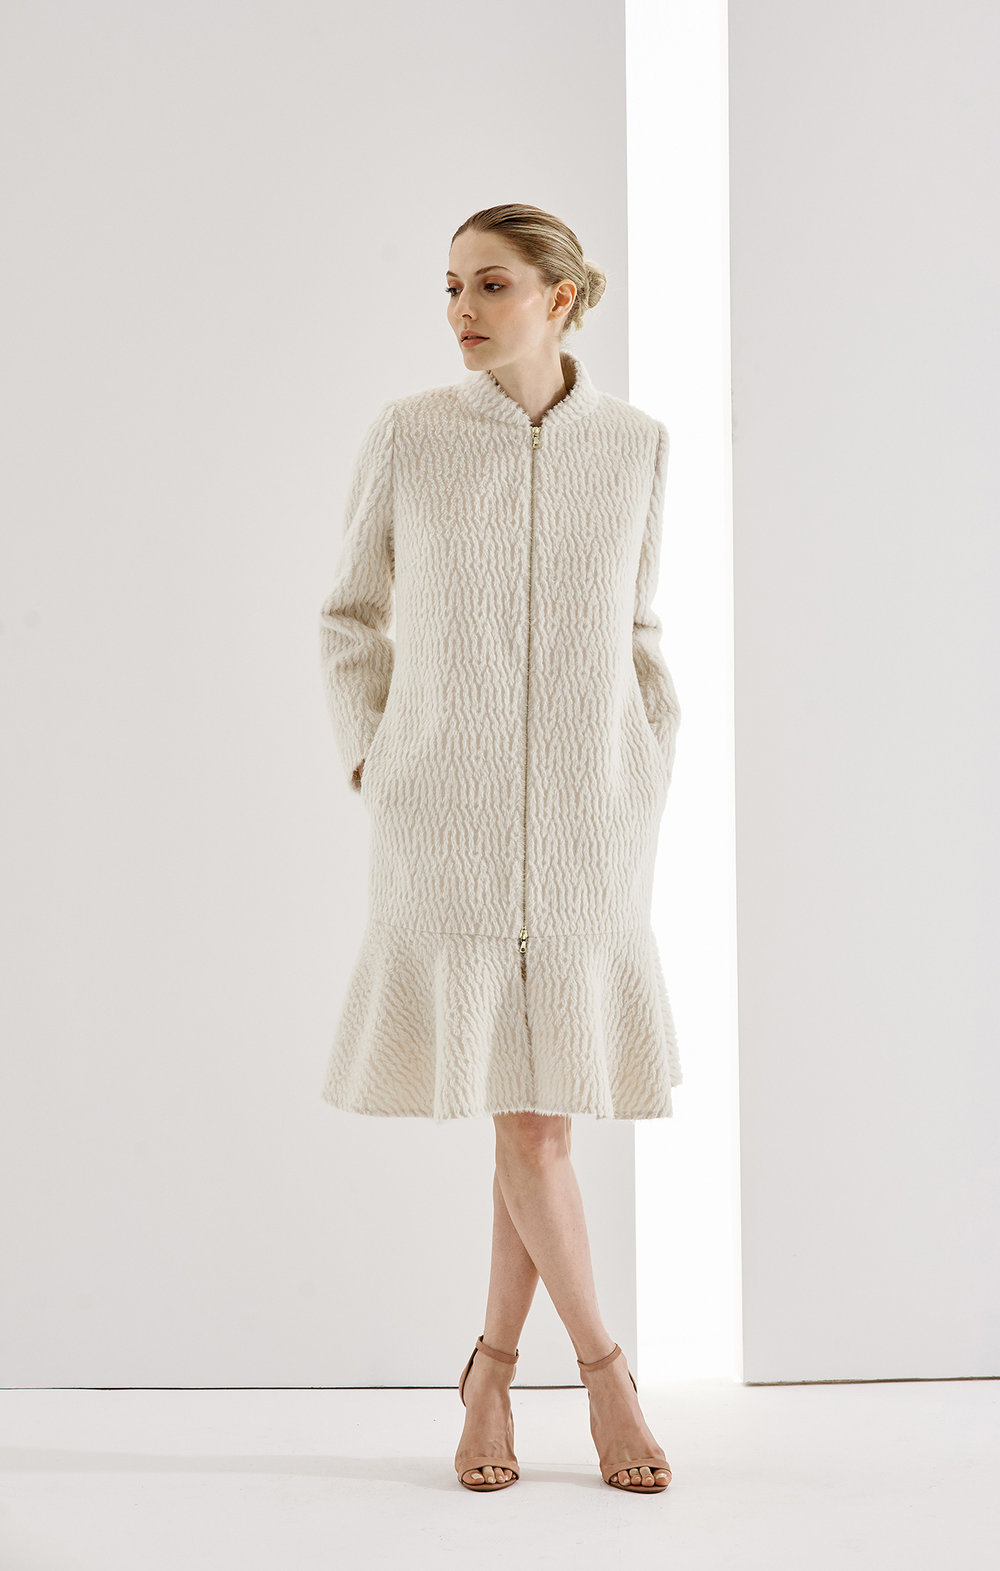 COAT DANIELLA AT-345 WAVE   Colors:  winter white,  mandarine  Sizes: XS, S, M, L, XL